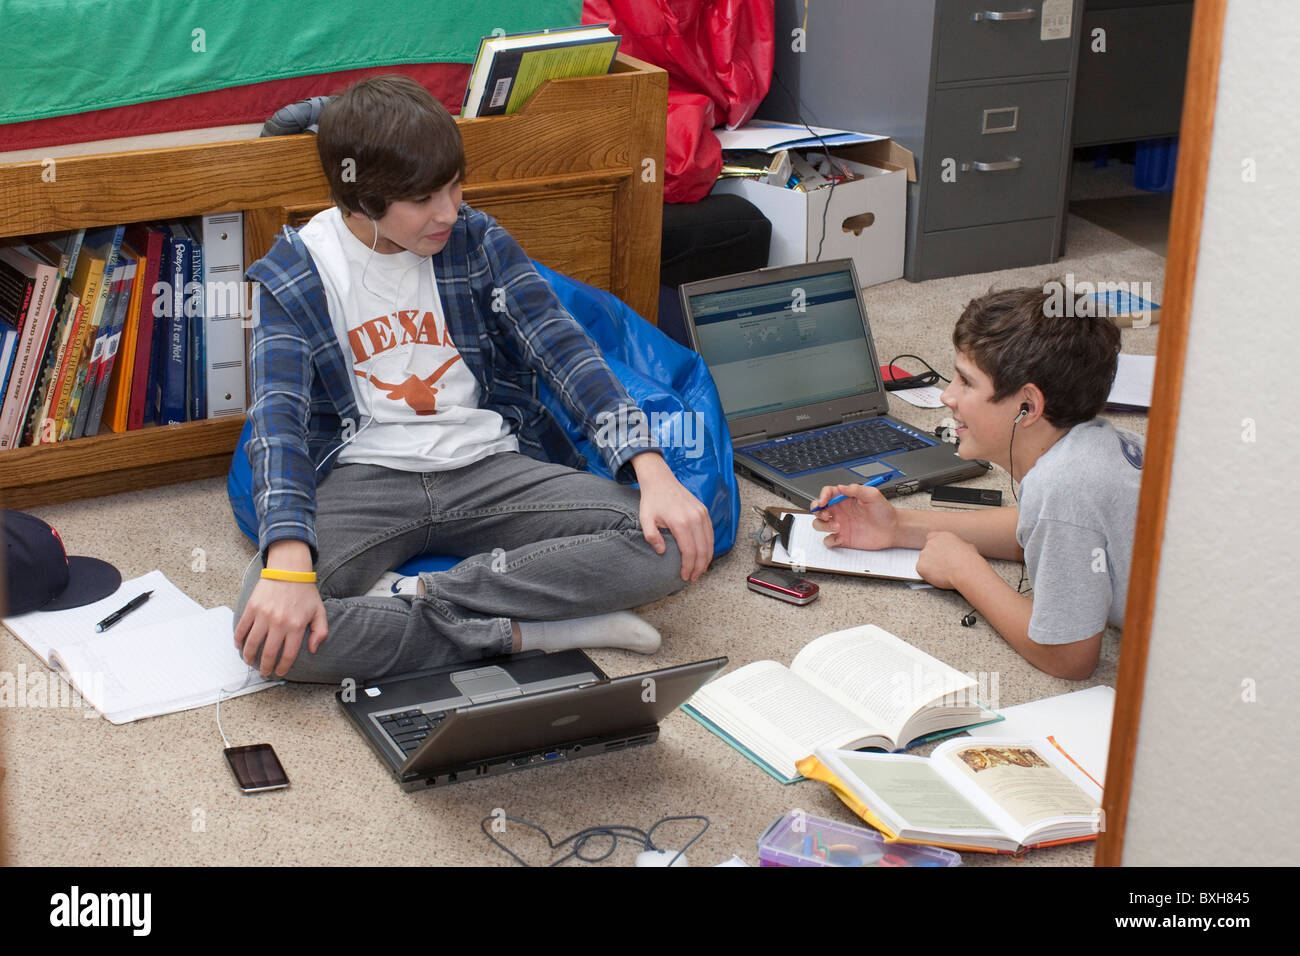 teen boys in bedroom with laptop computer and textbooks